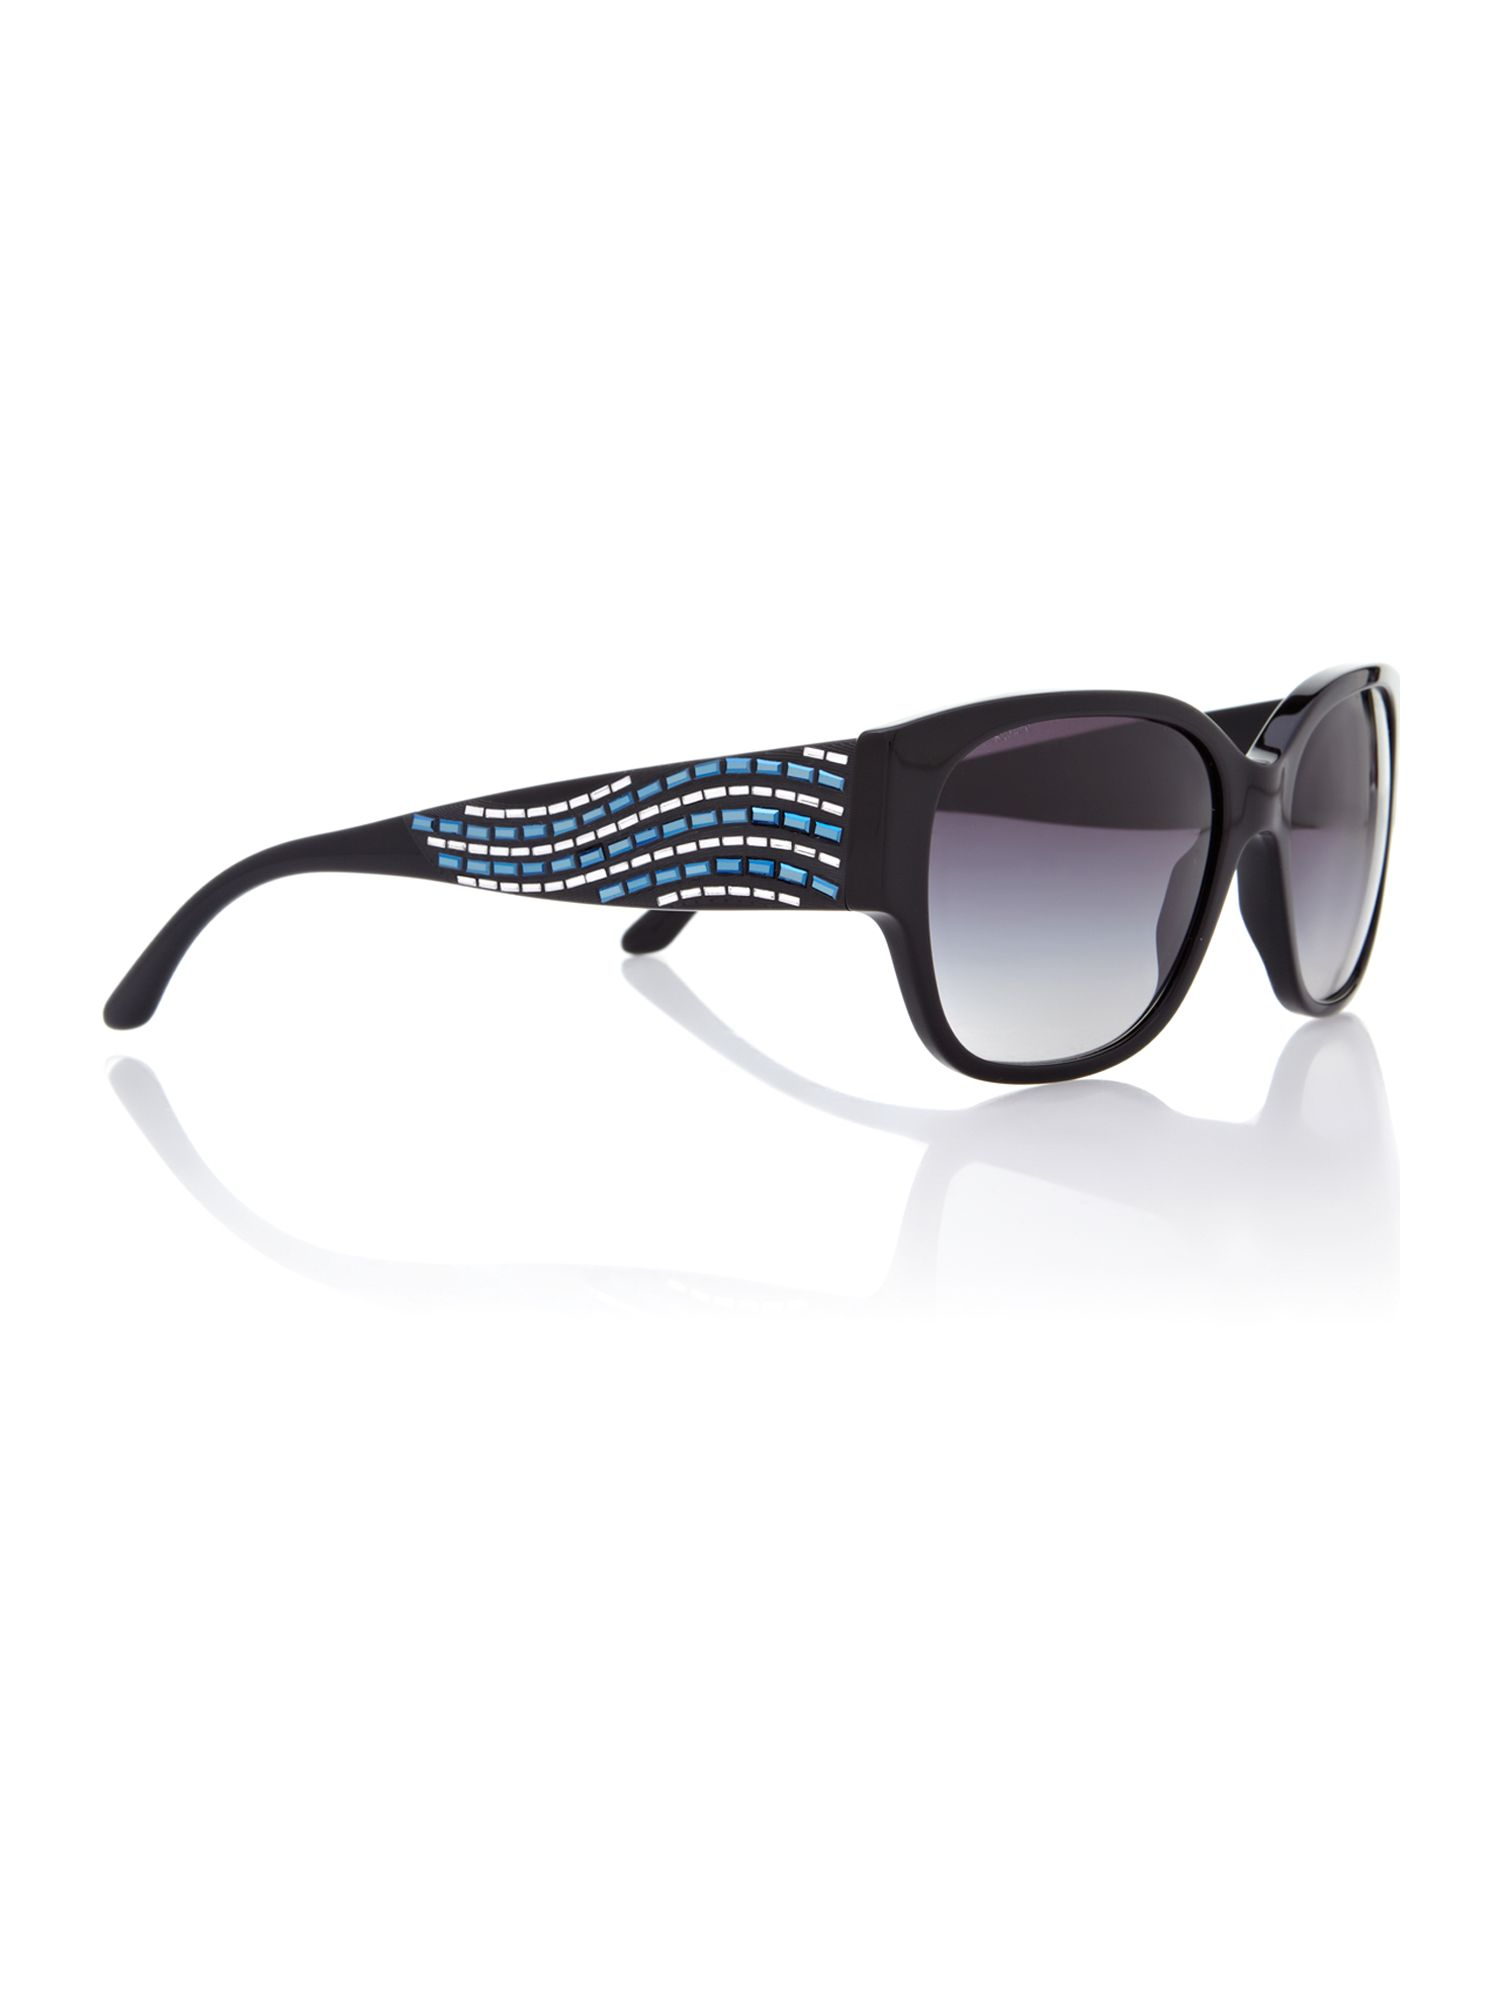 Ladies AR8014B luxury sunglasses